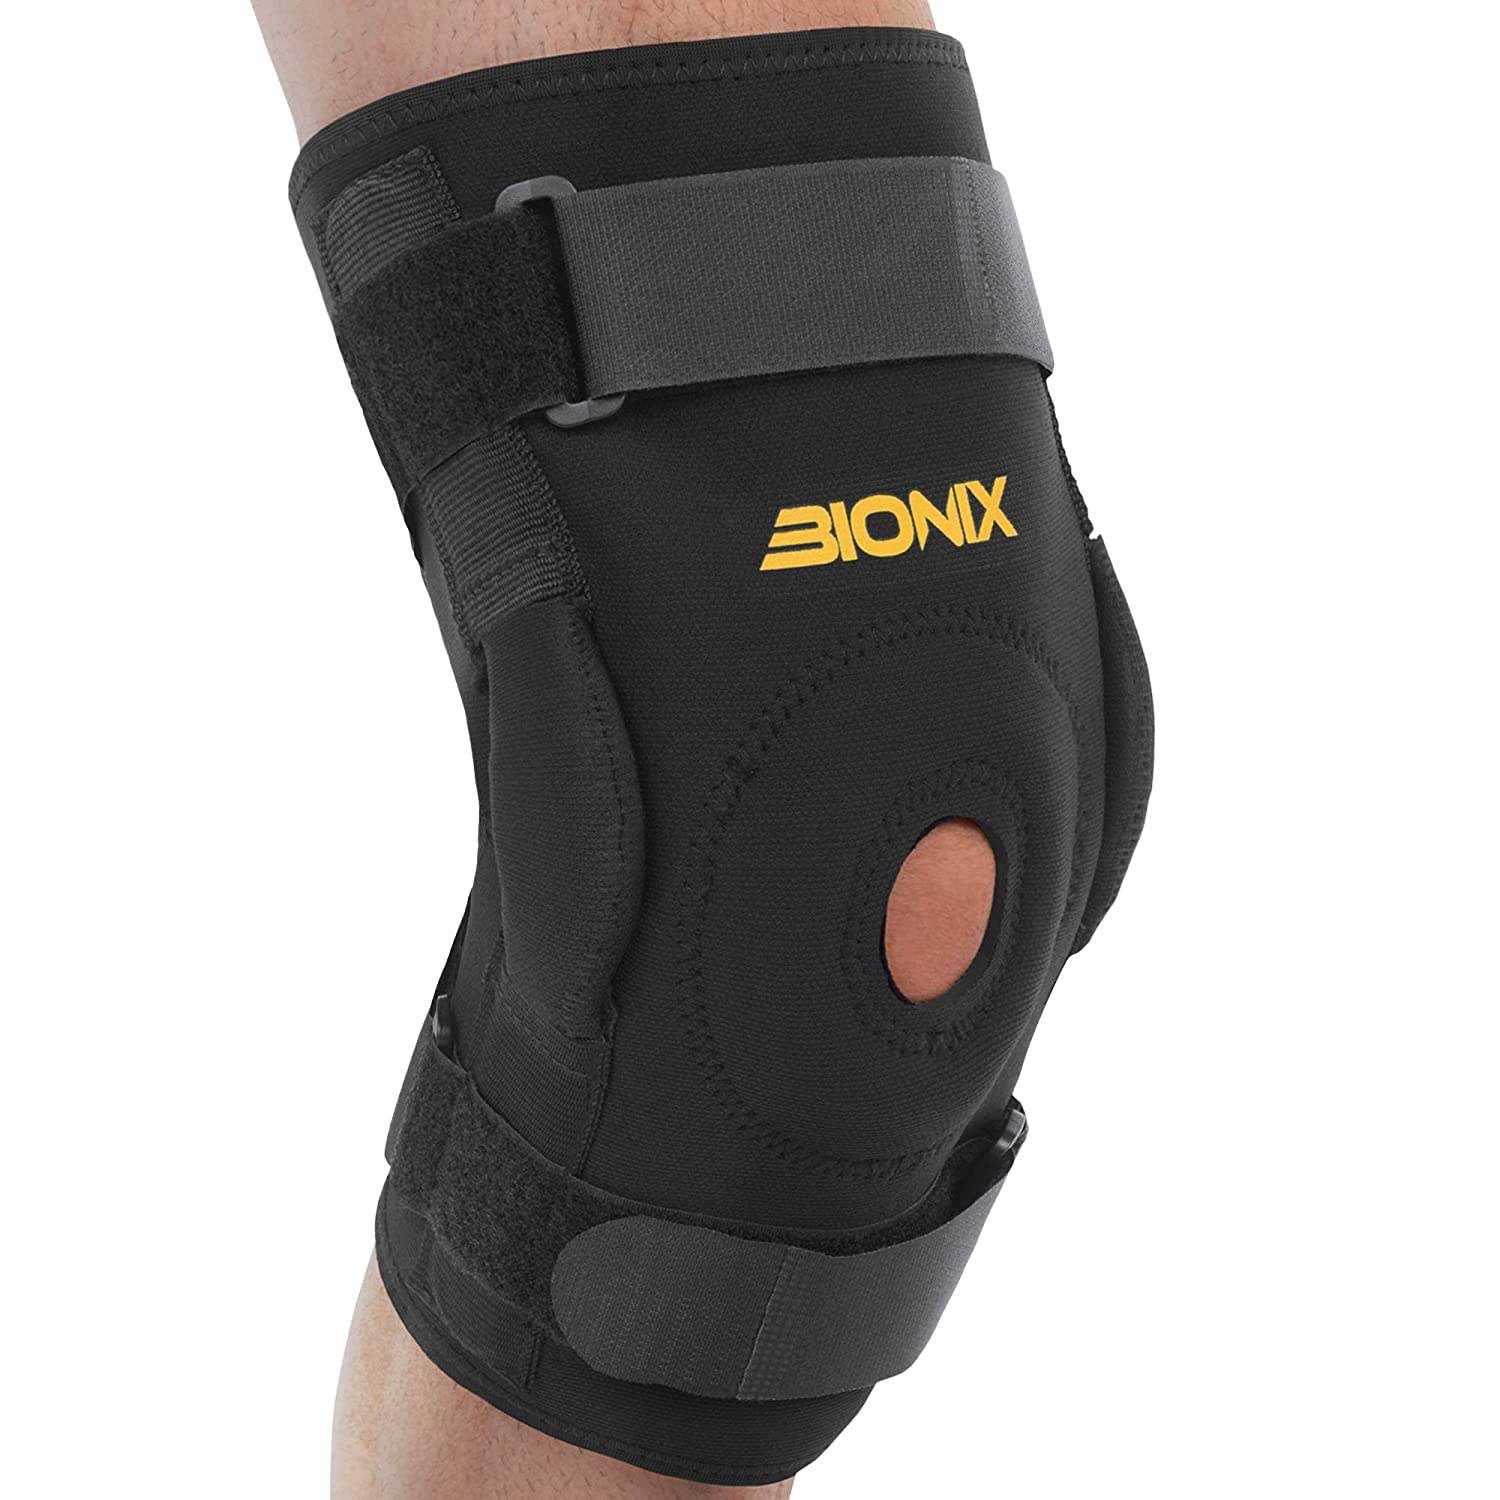 8a9ef010d4 Bionix Professional Support Hinged Knee Brace Support w/ Bilateral  Stability (Neoprene) Left, Right Leg   Injury Prevention & Recovery,  Thermal Compression ...